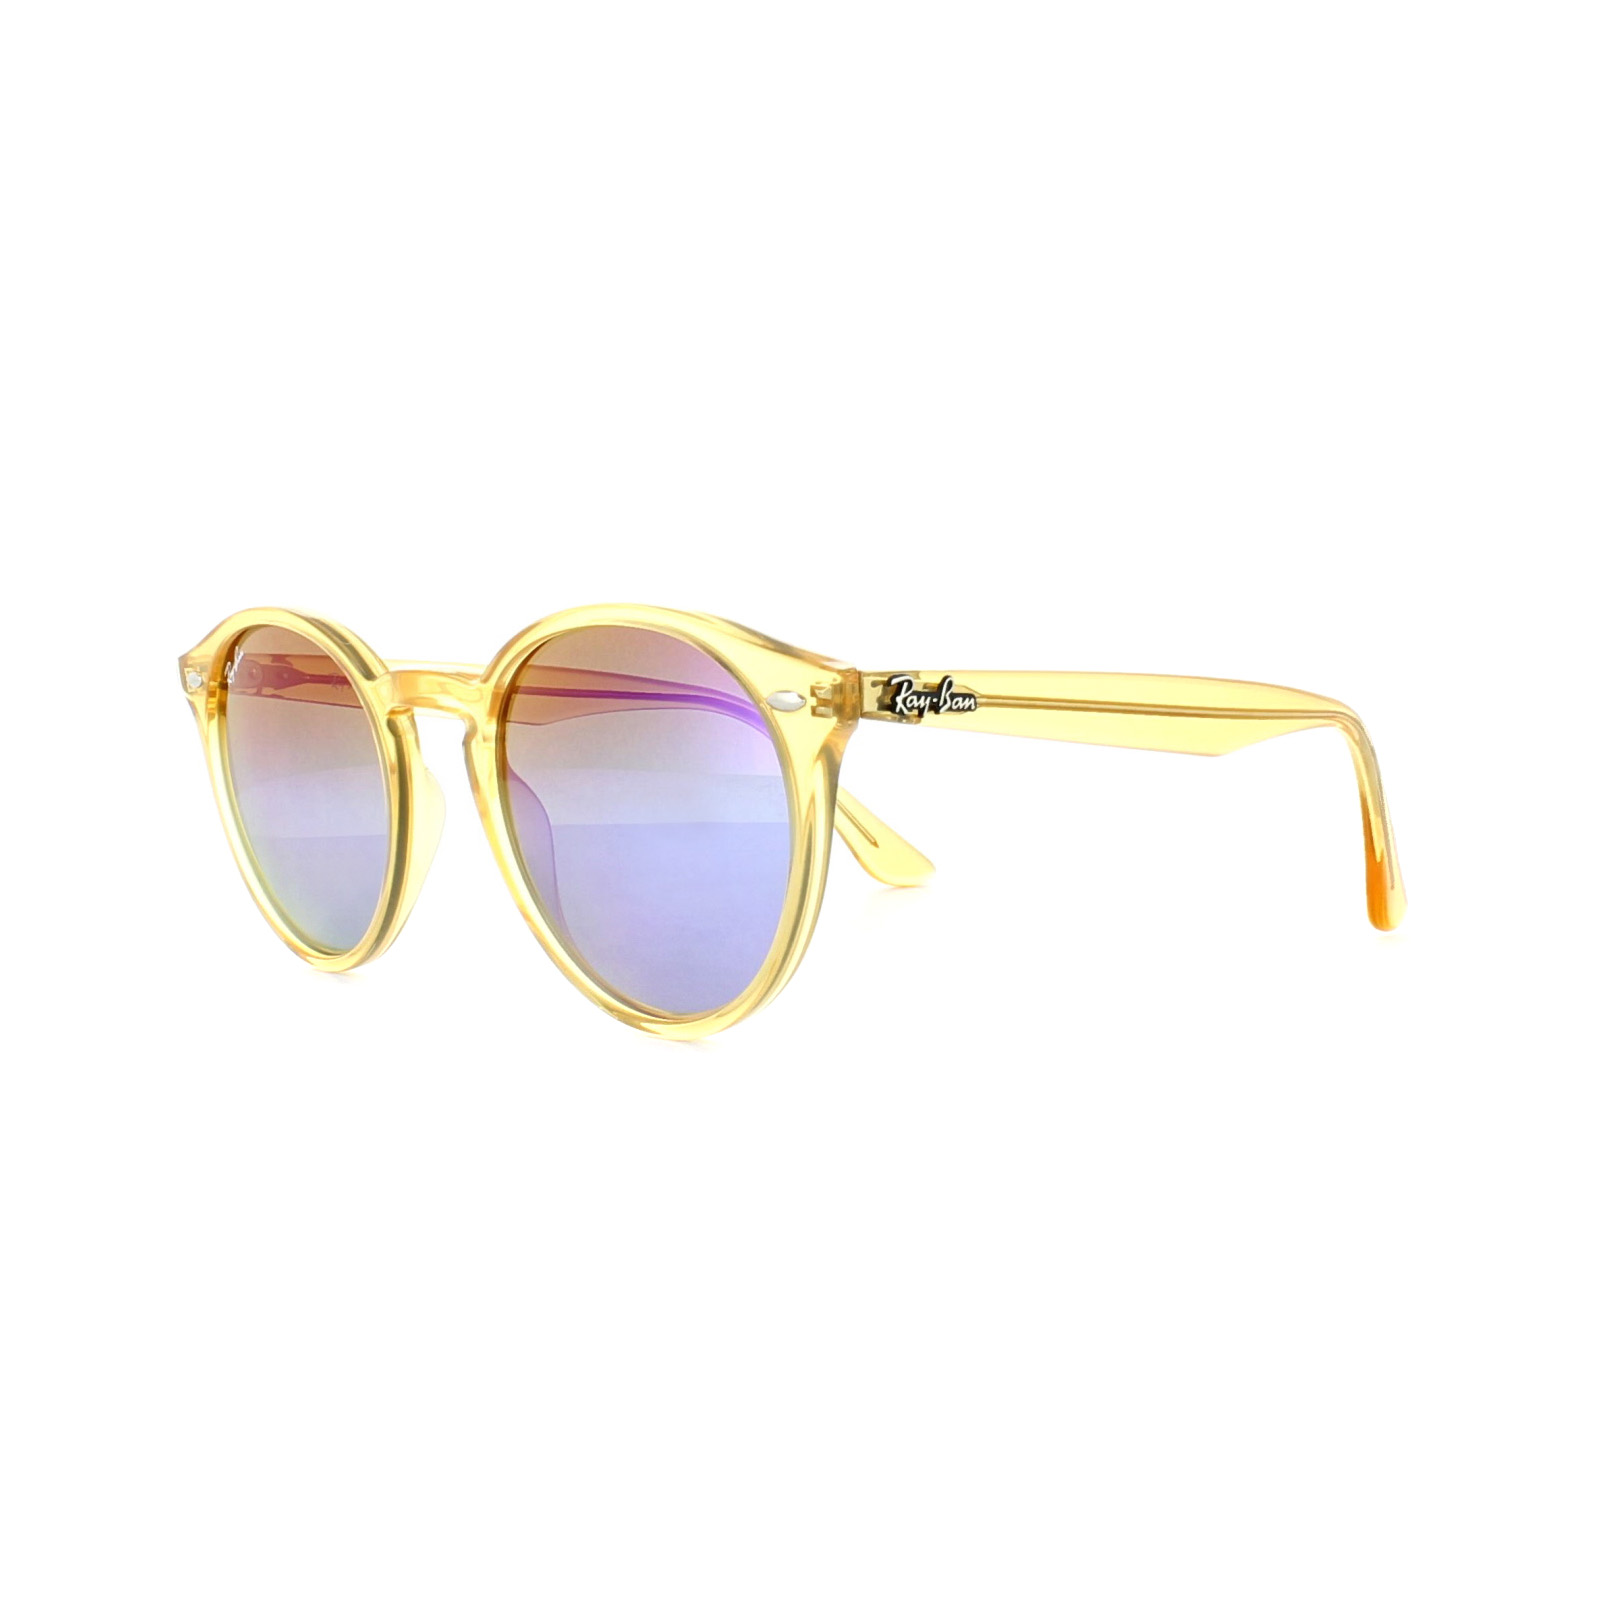 2574d97870 Sentinel Ray-Ban Sunglasses 2180 6277B1 Yellow Blue Violet Gradient Mirror